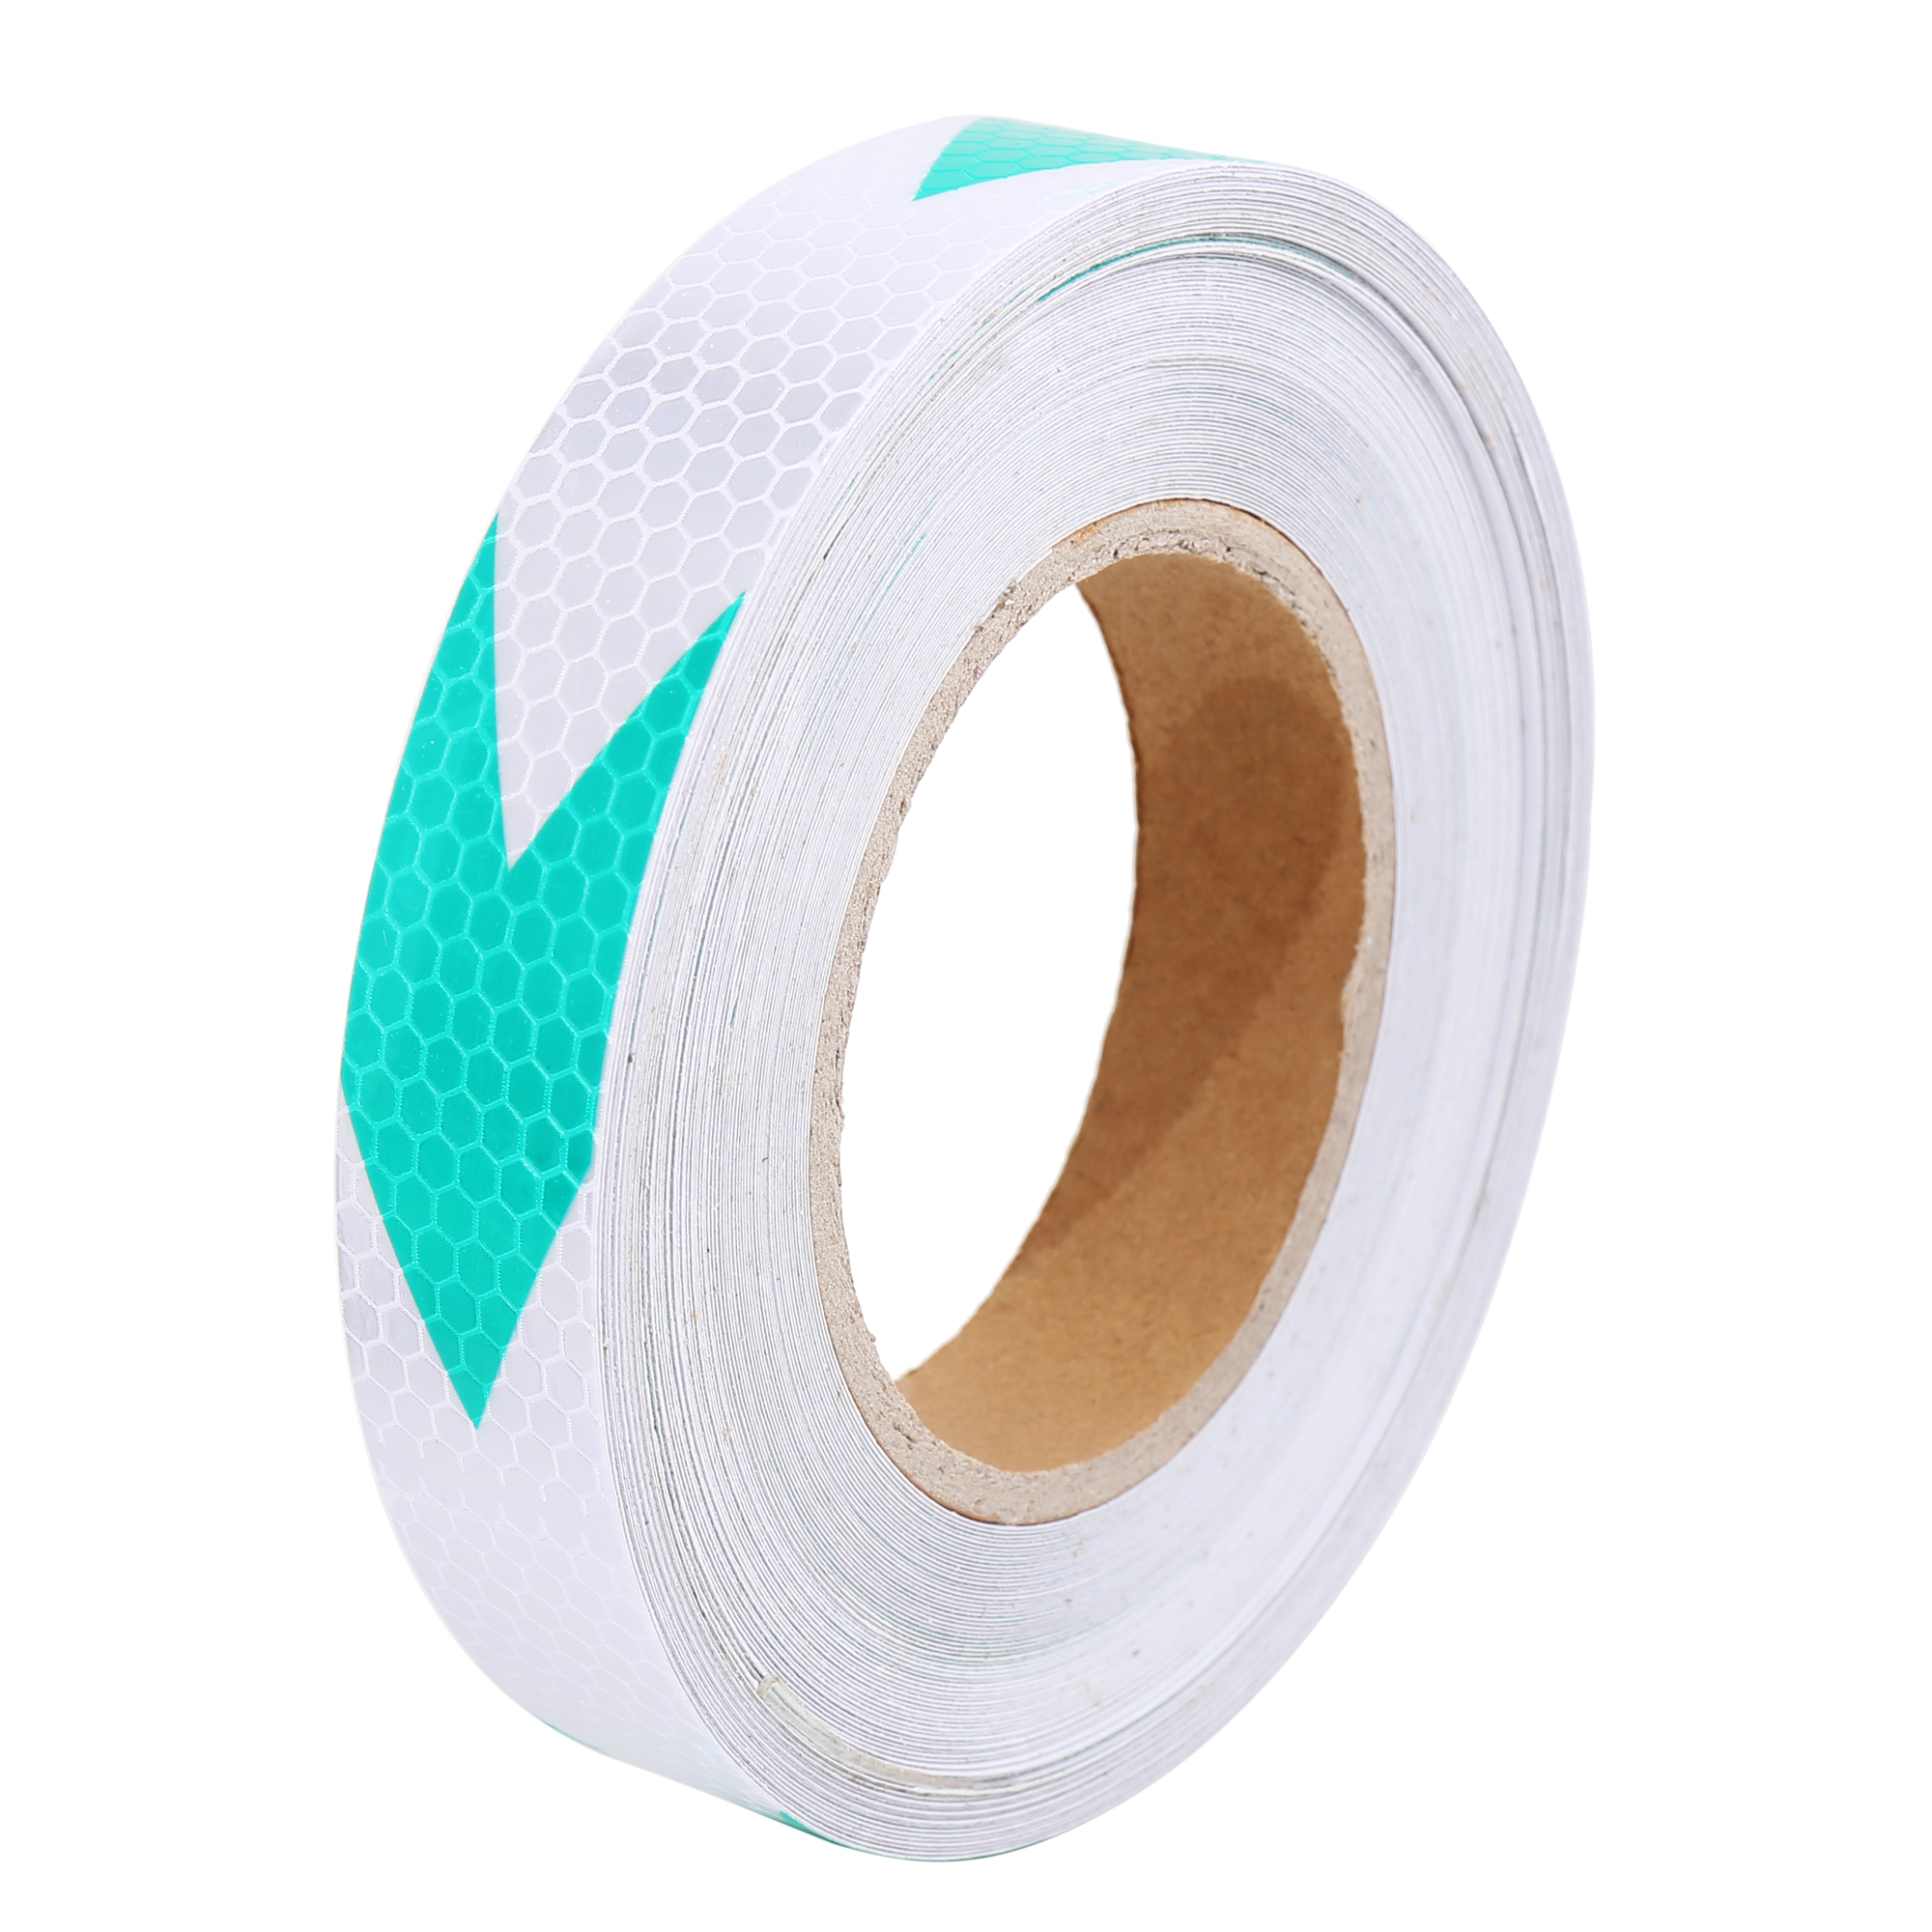 25M Green Sliver Tone Vehicle Arrow Pattern Reflective Sticker Tape Strip - image 3 of 3